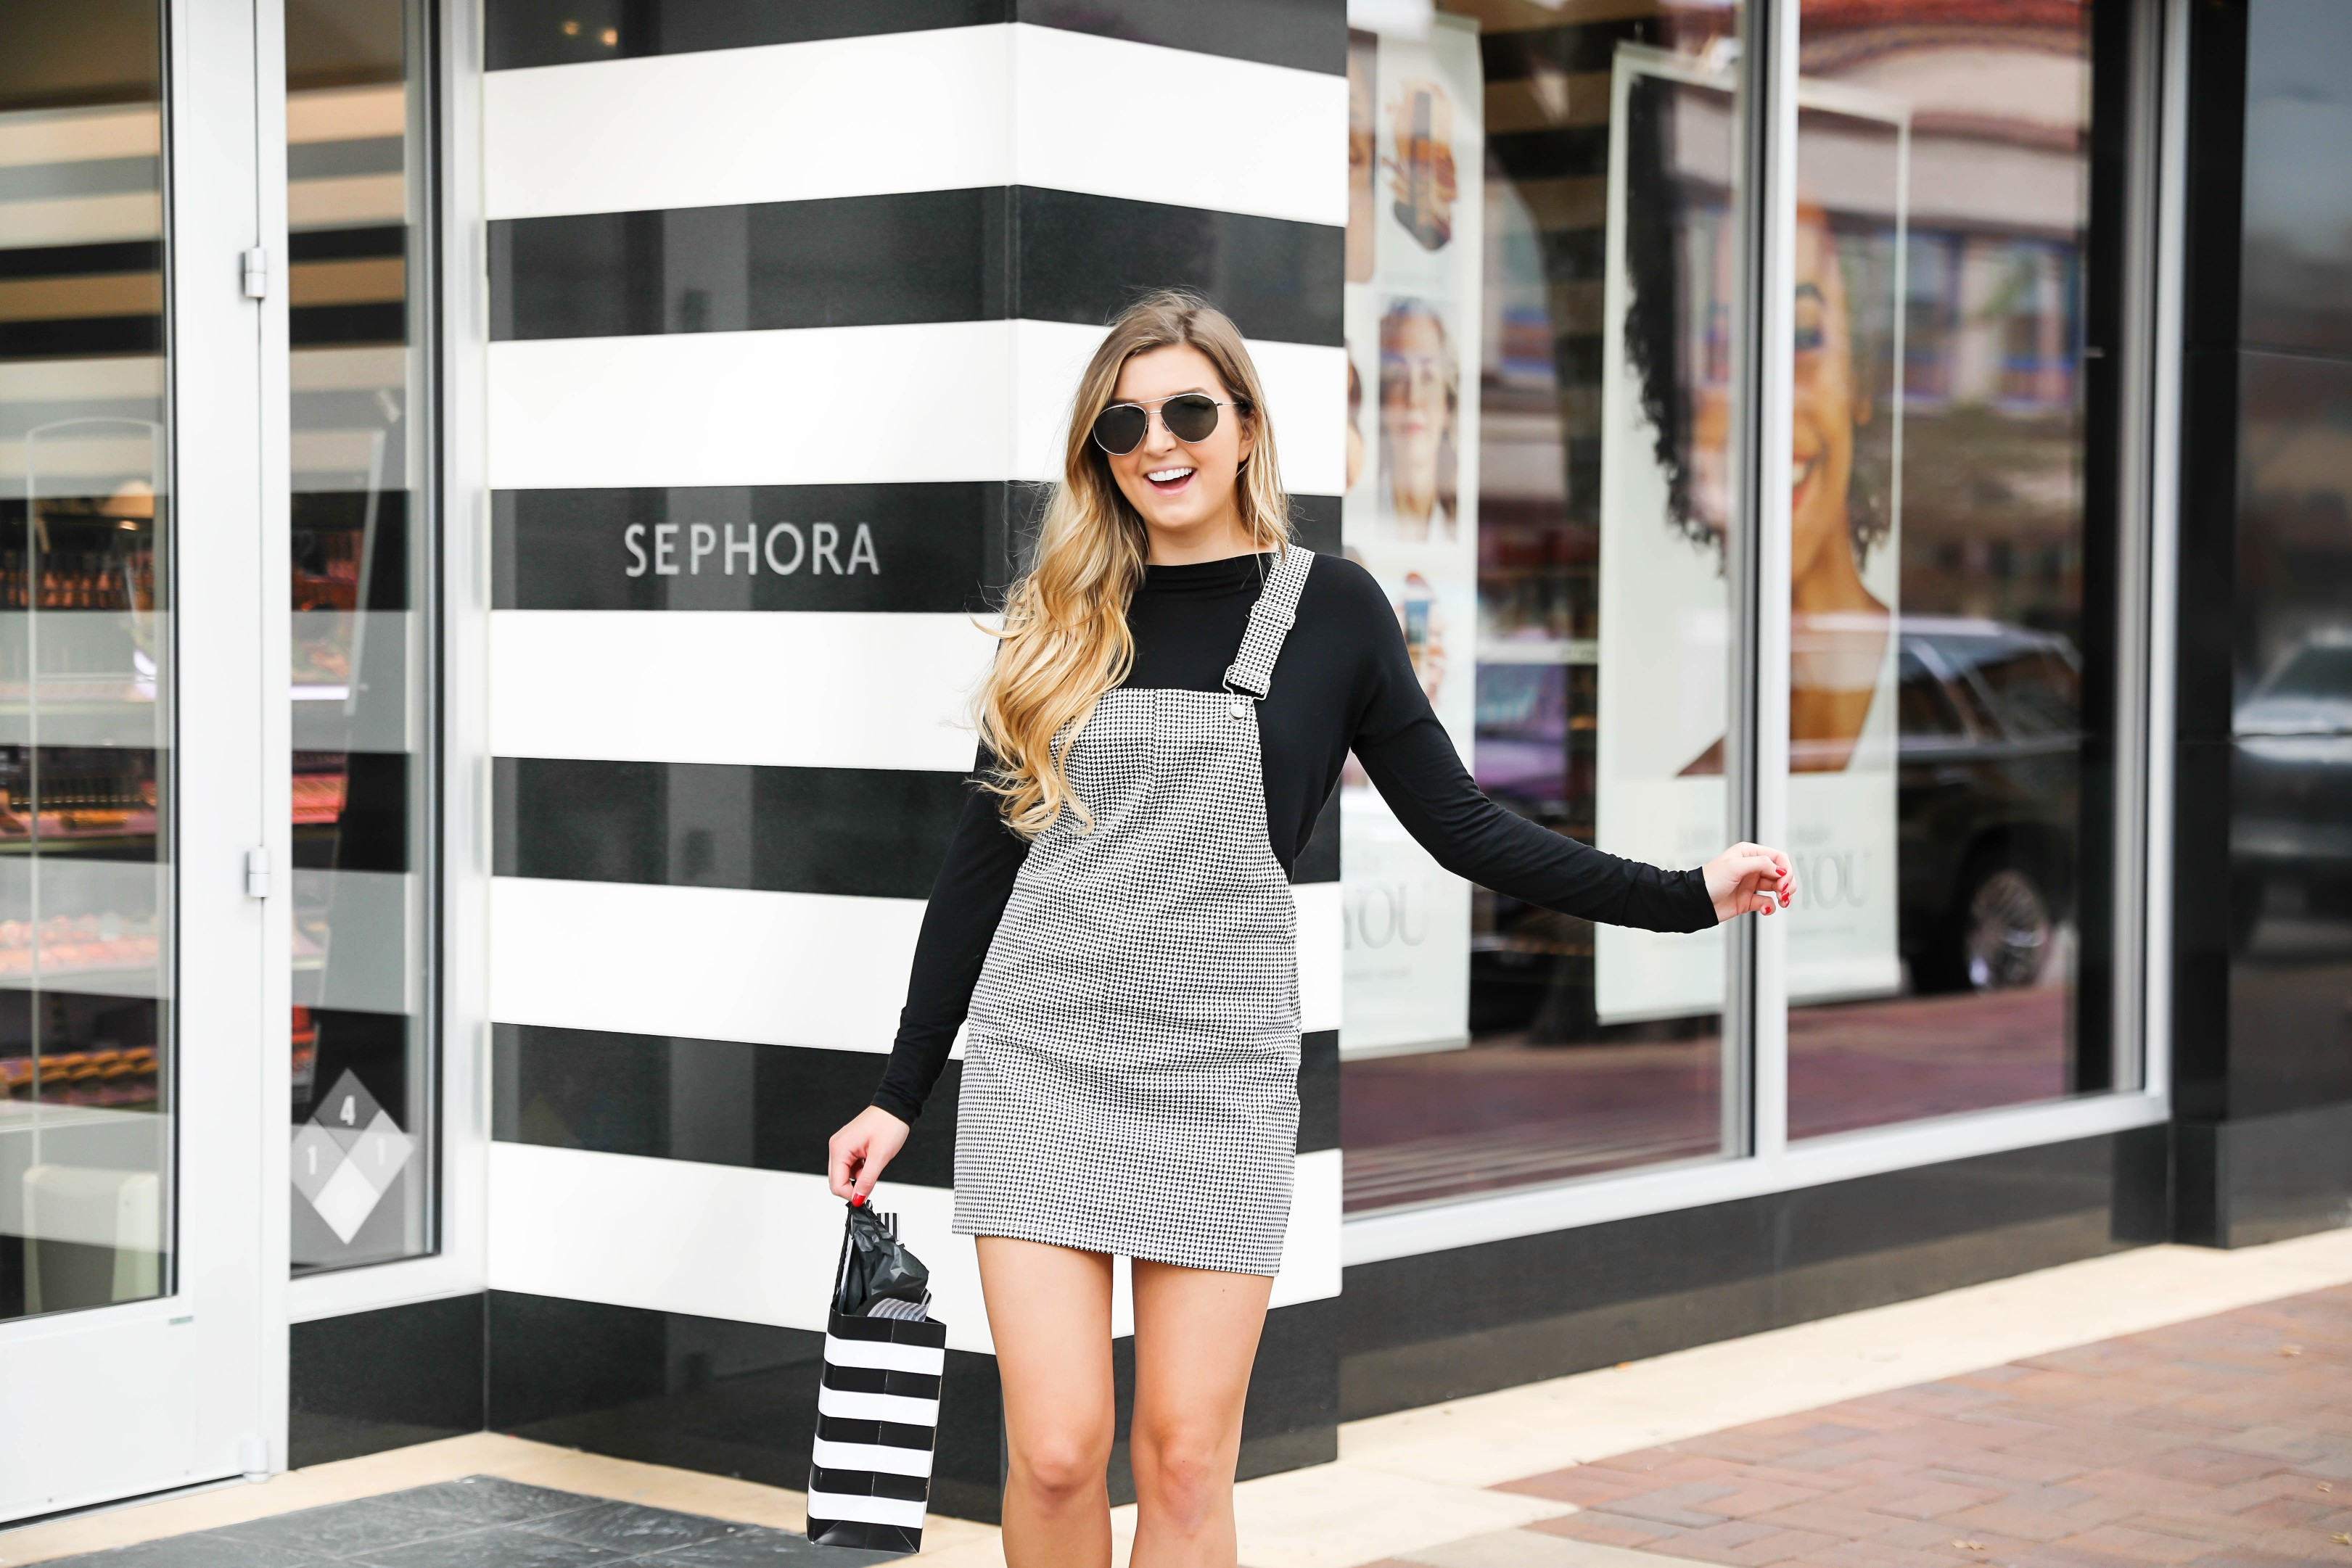 Sephora sale favorites that I use everyday! Check out all the best things to buy in the 2018 Sephora sale plus see my wishlist! The cutest fall outfit is also featured in this post so get details on this black and white checkered overall dress on fashion blog daily dose of charm by lauren lindmark